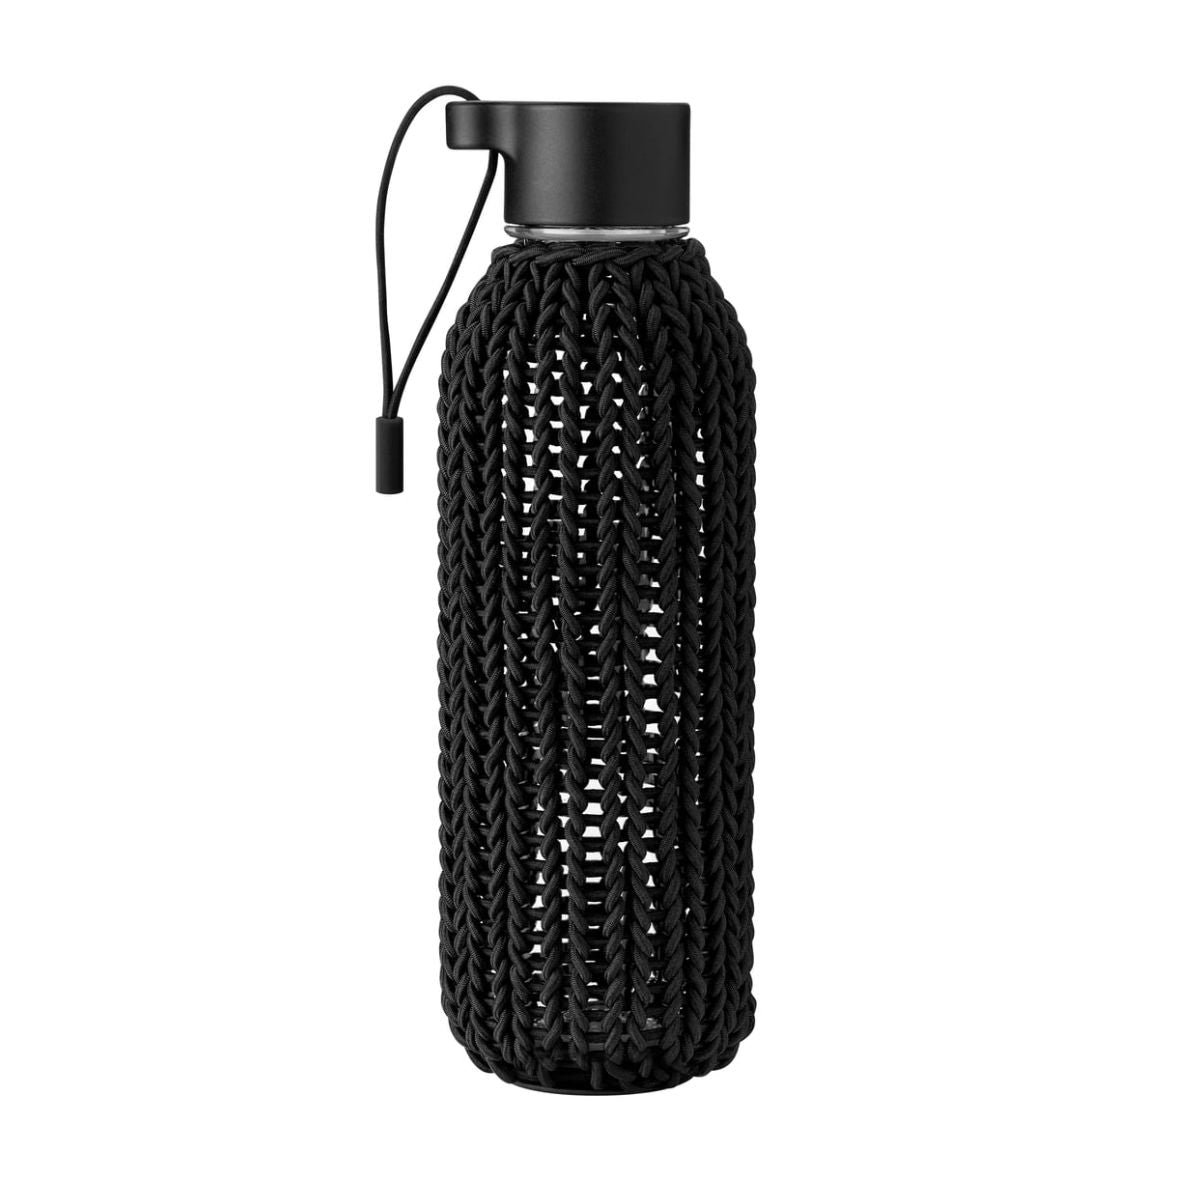 Stelton Catch-It drinking bottle 600ml